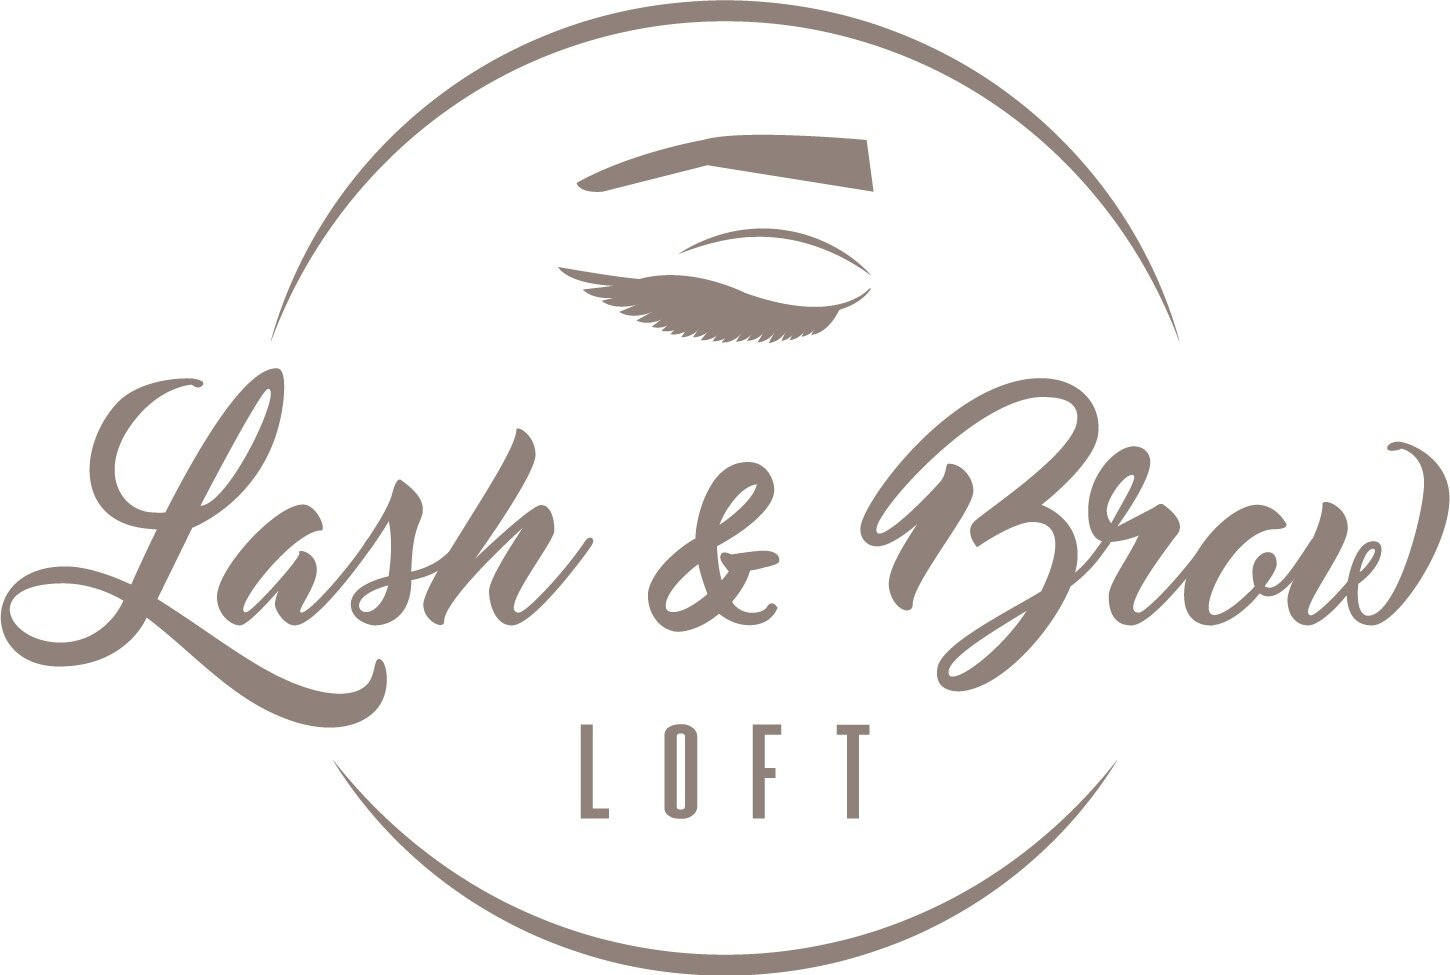 The Lash and Brow Loft